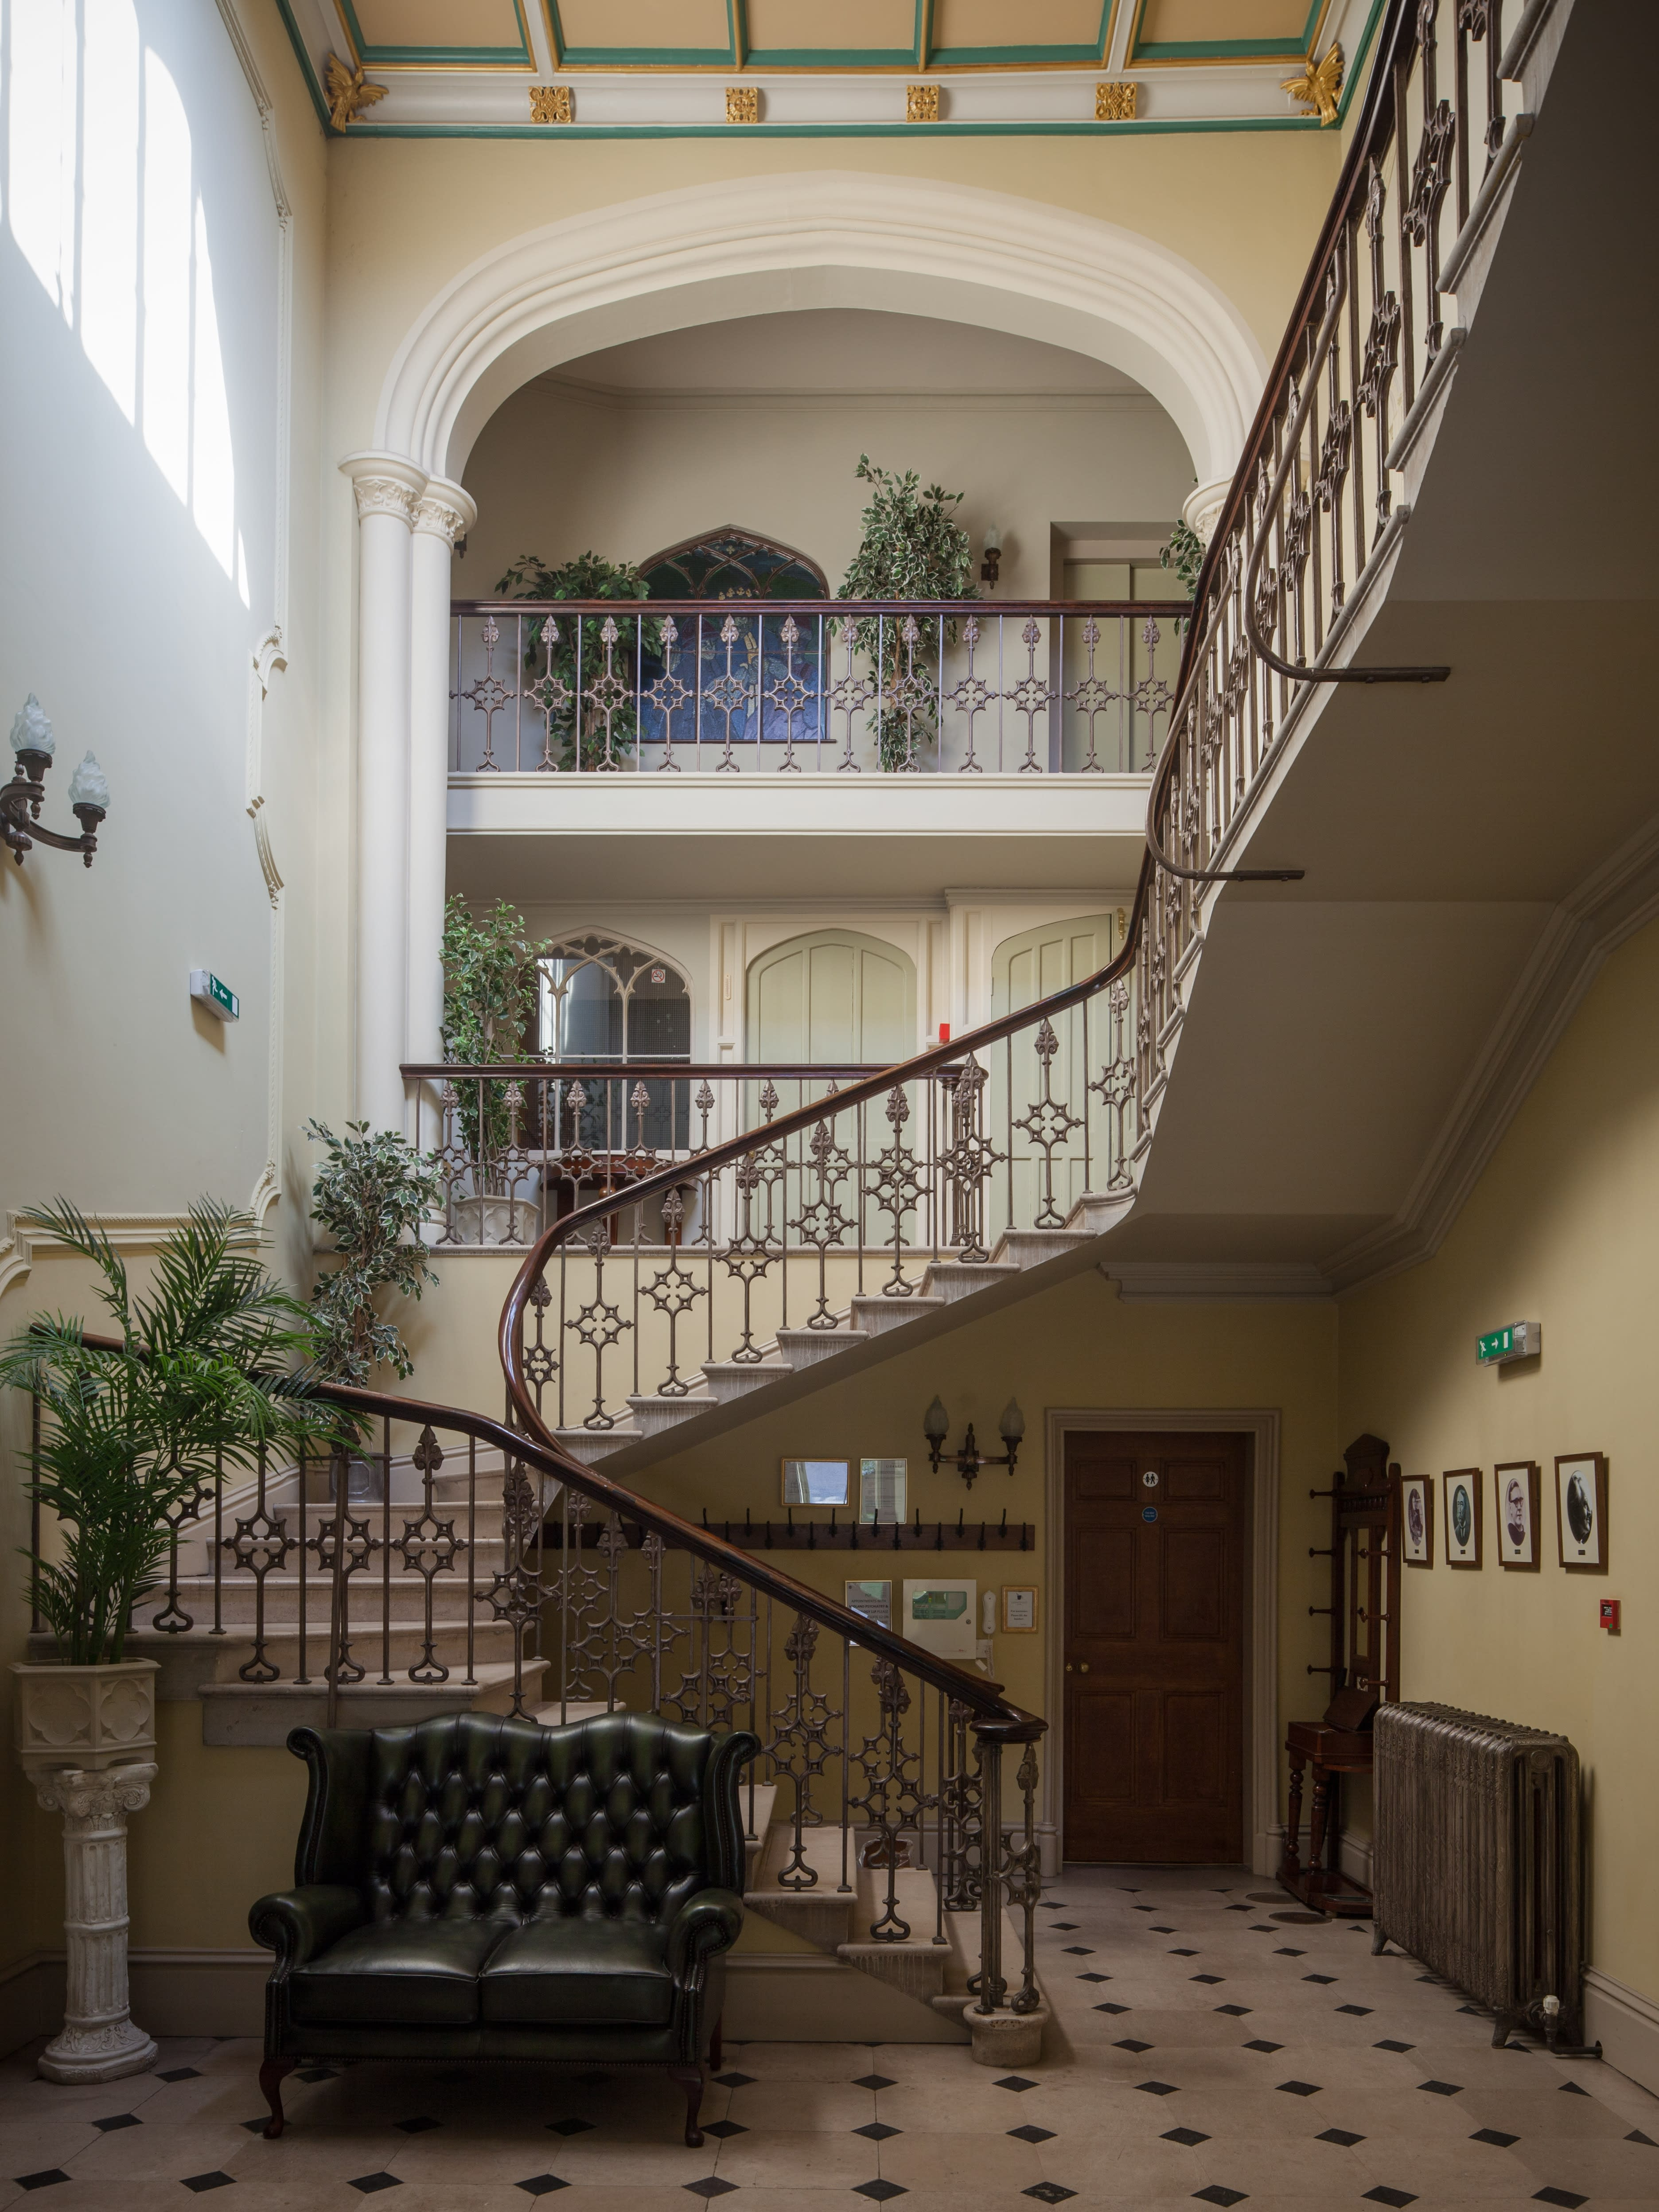 The Gothic staircase